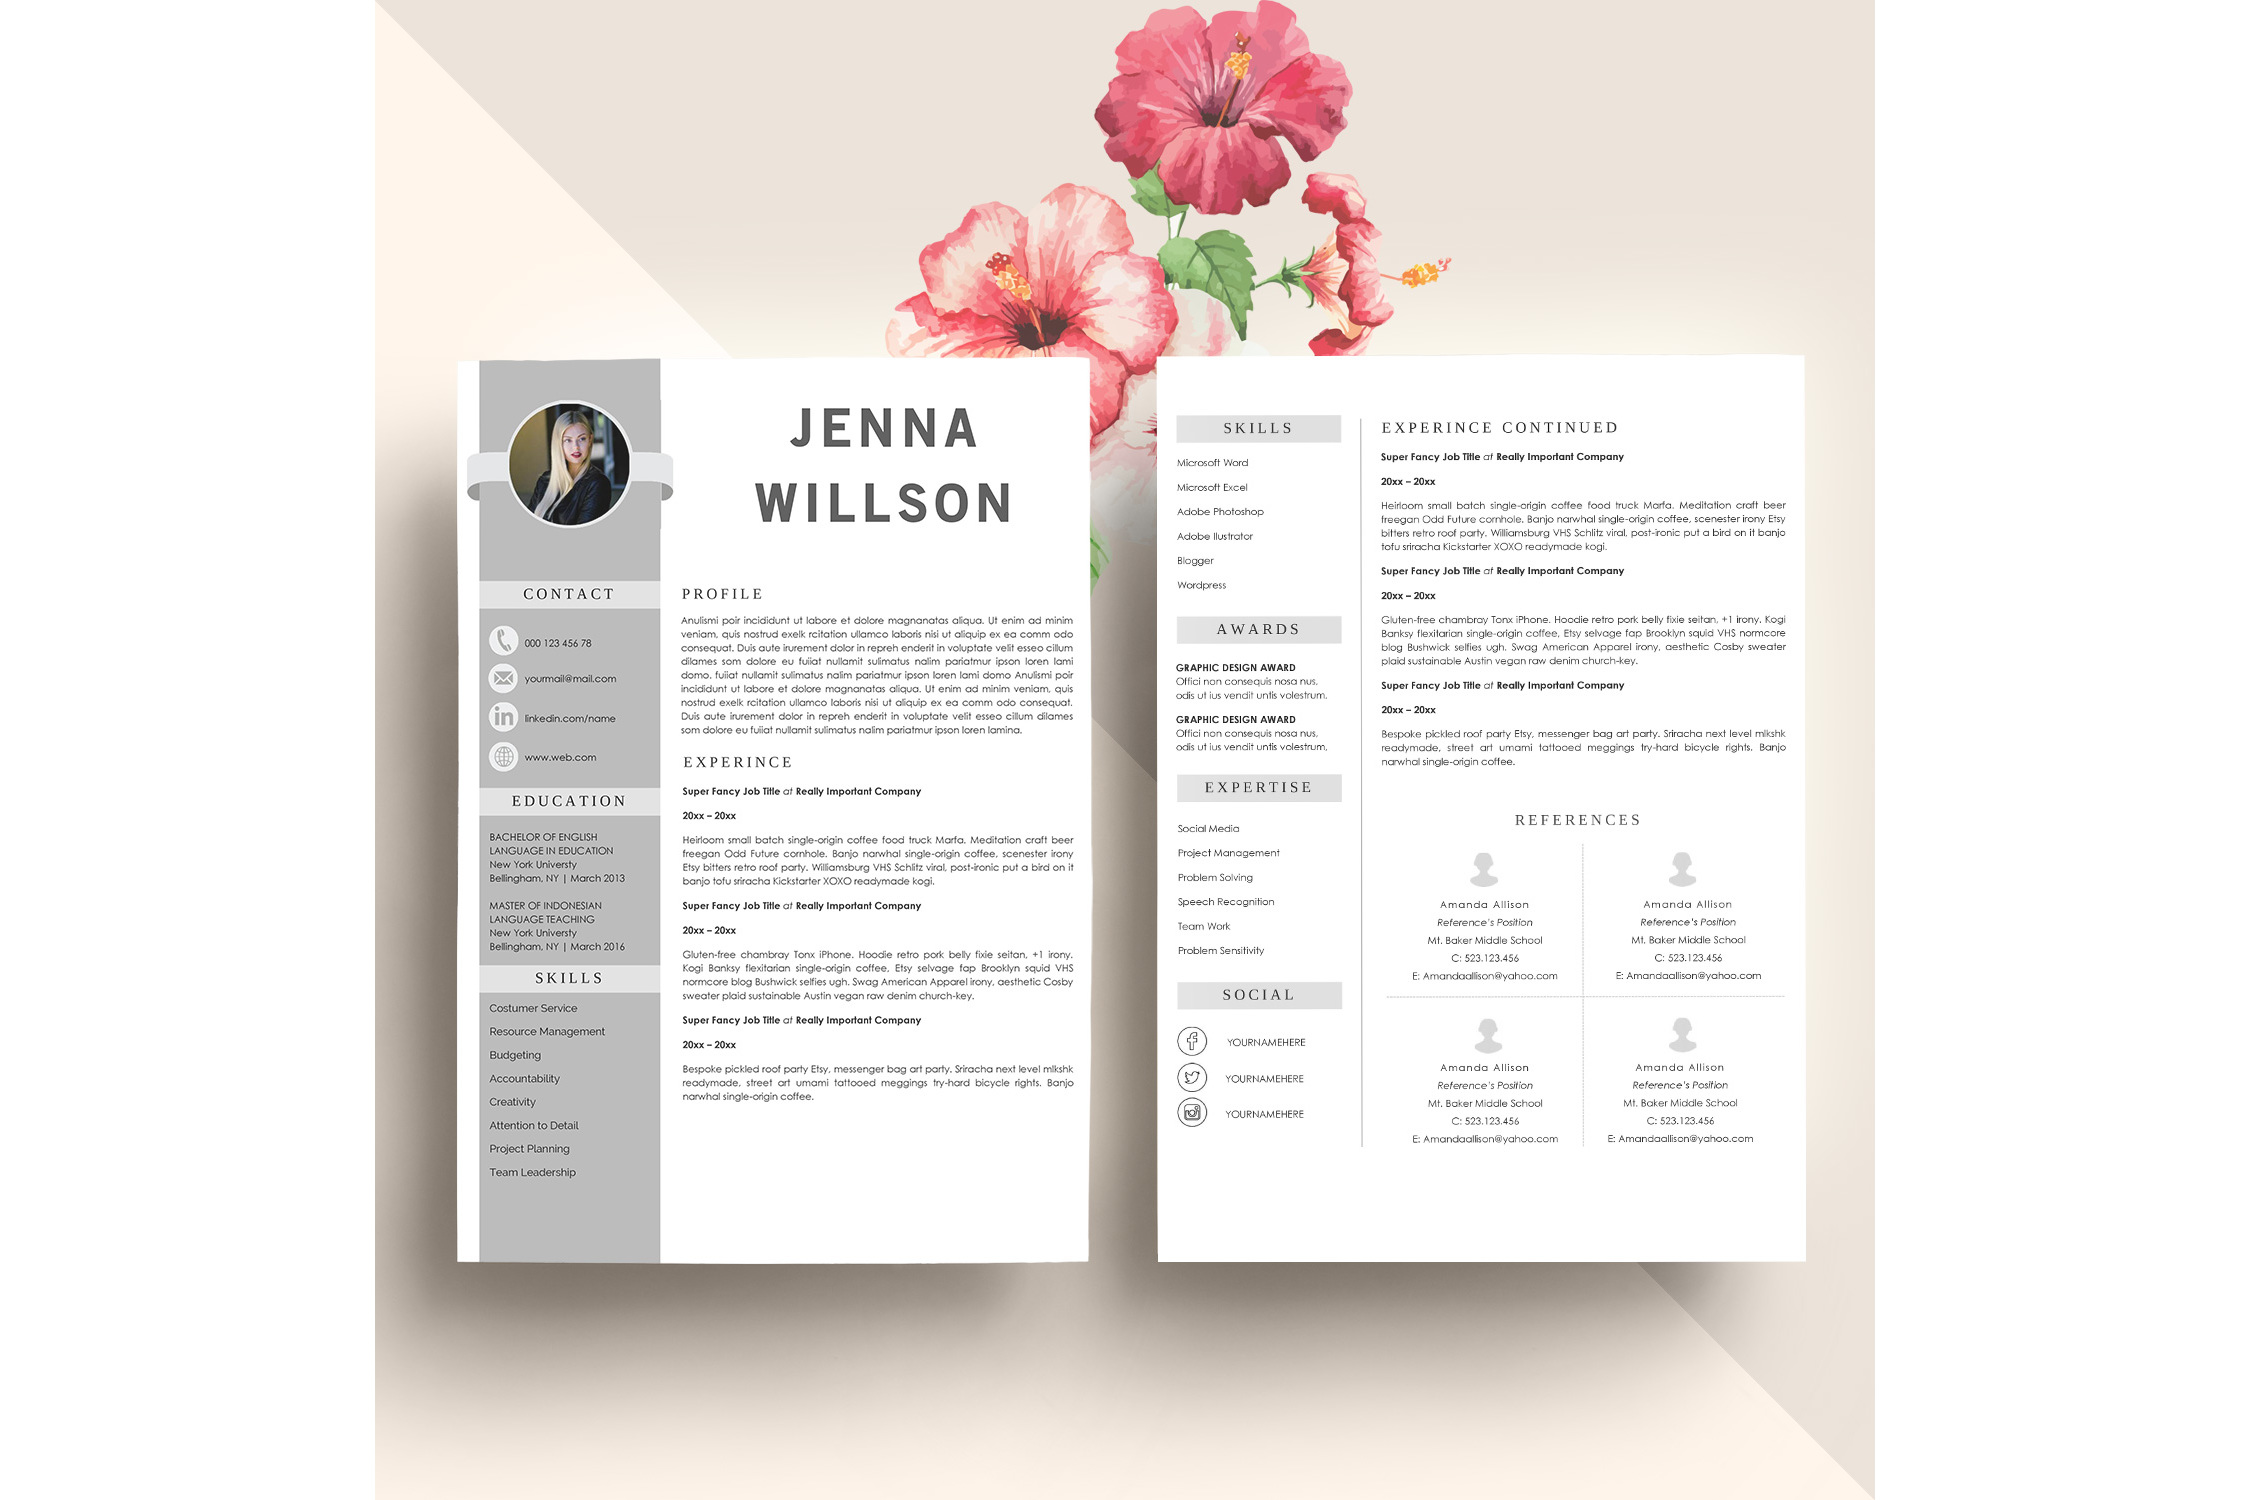 Professonal Resume Template Word example image 2